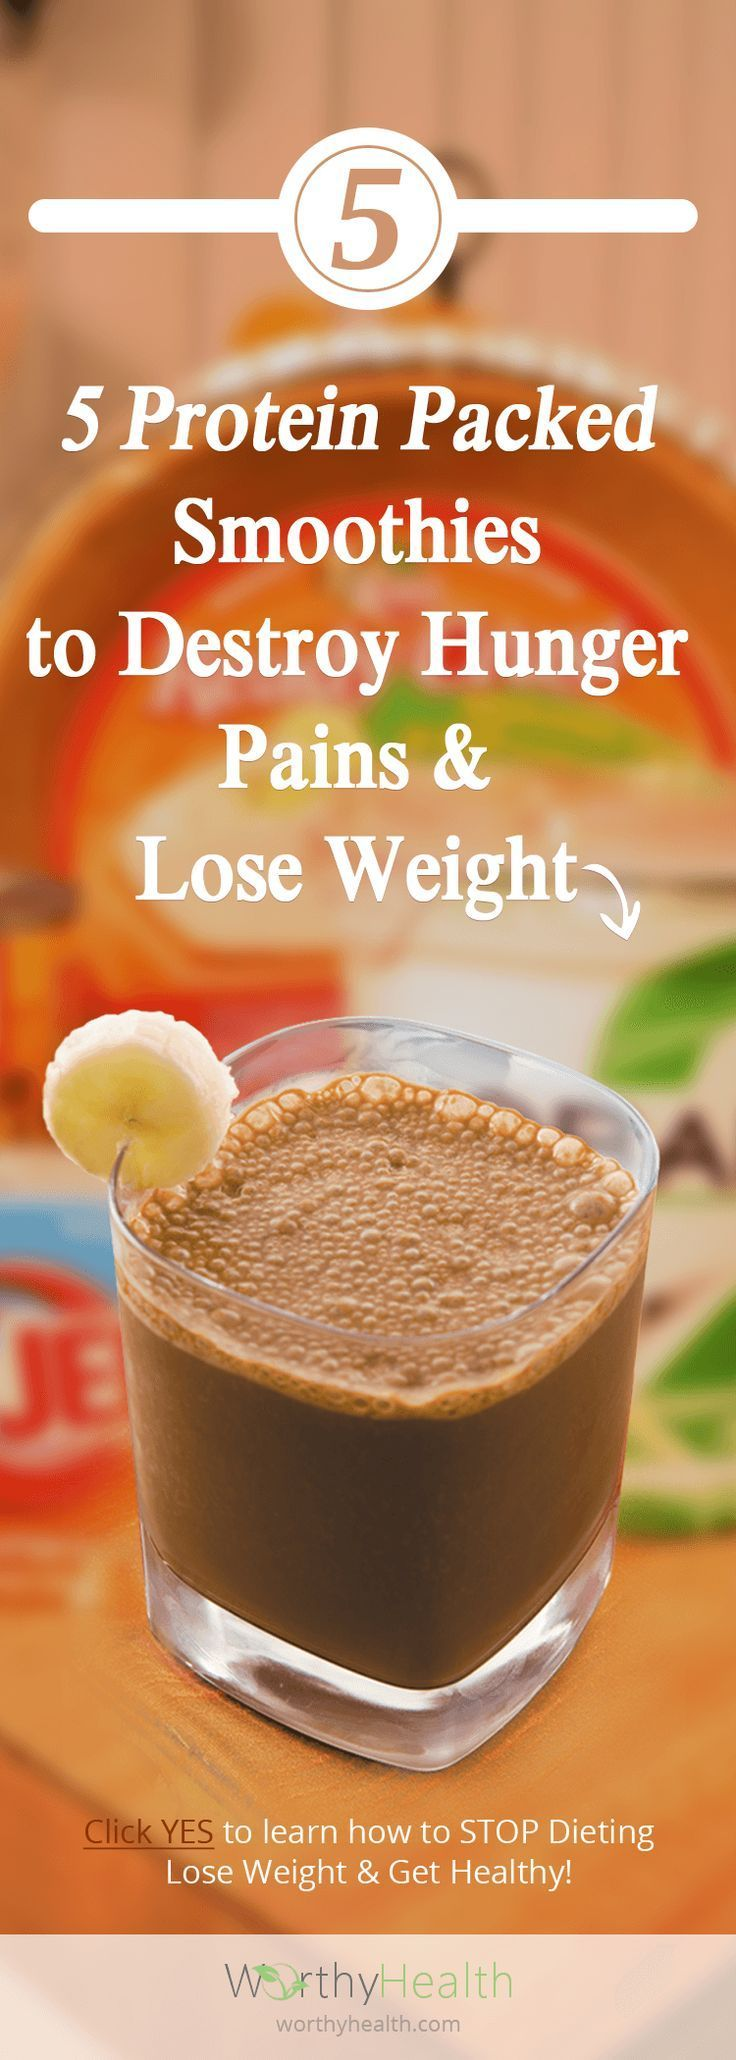 @worthyhealth 5 Protein Packed Smoothies to Destroy Hunger Pains and Lose Weight